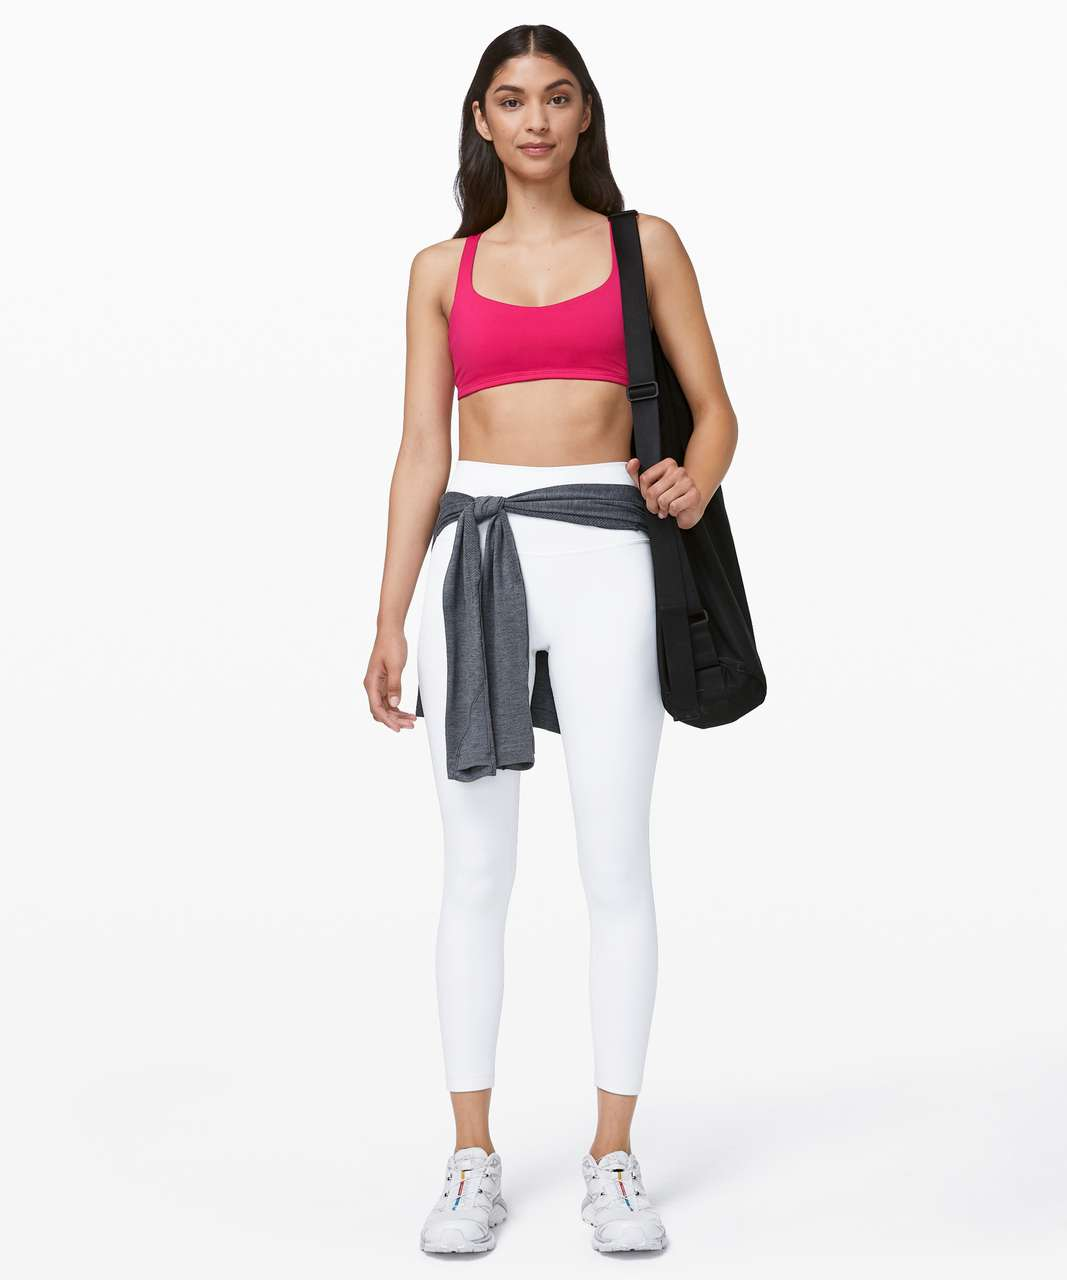 Lululemon Free To Be Bra - Calypso Pink